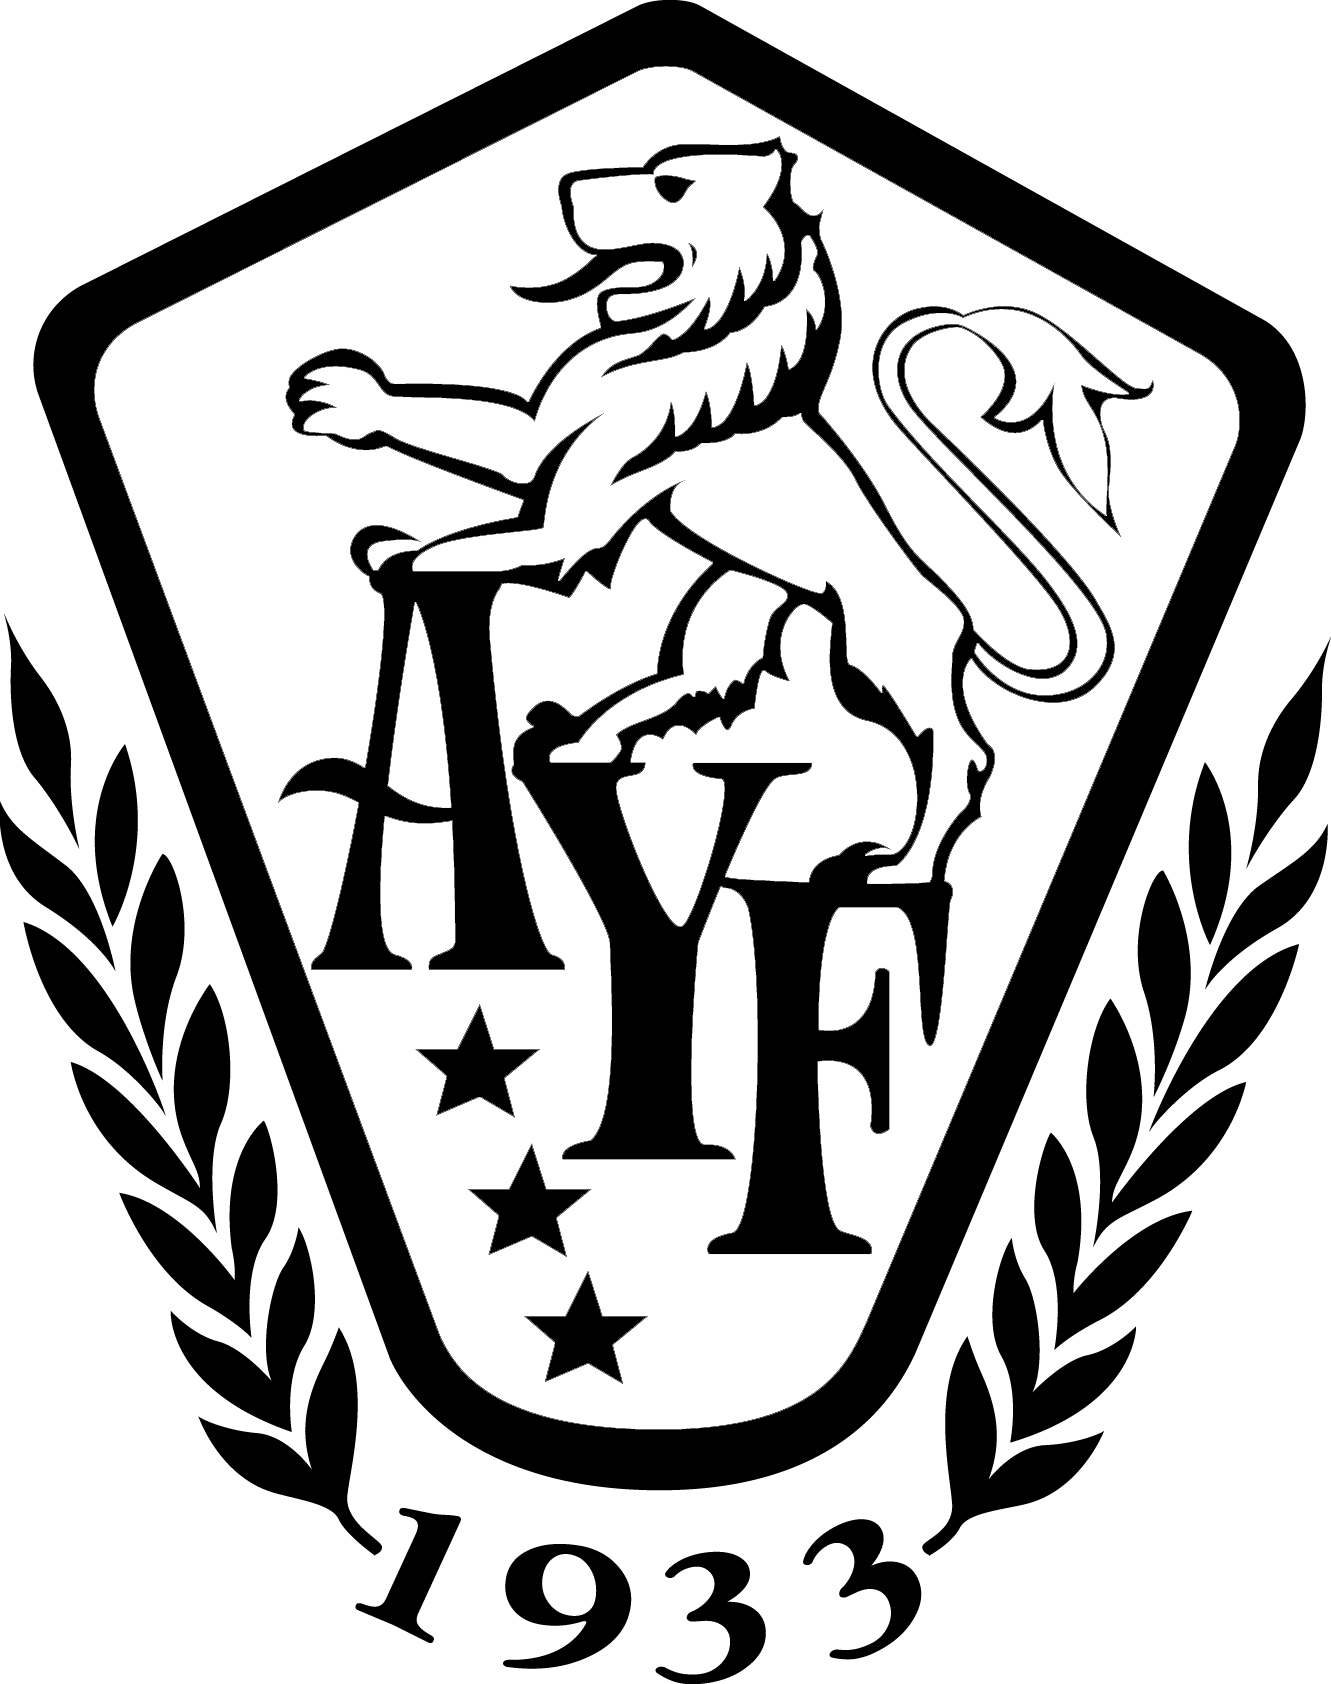 AYF-YOARF Eastern U.S.: The Year Ahead and Years to Come